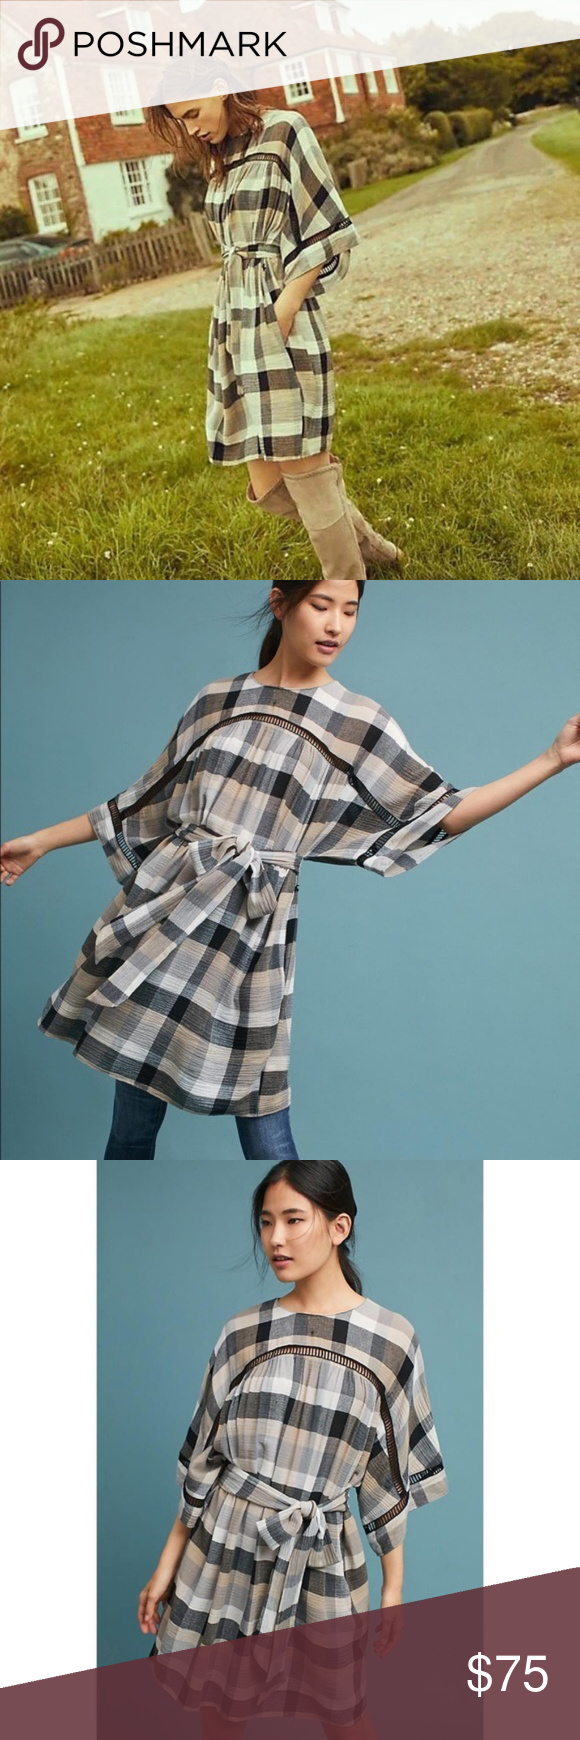 5908d216f557 ANTHROPOLOGIE Tie Waist Kimono Tunic Dress {FF30} Pair this plaid tunic  dress with over